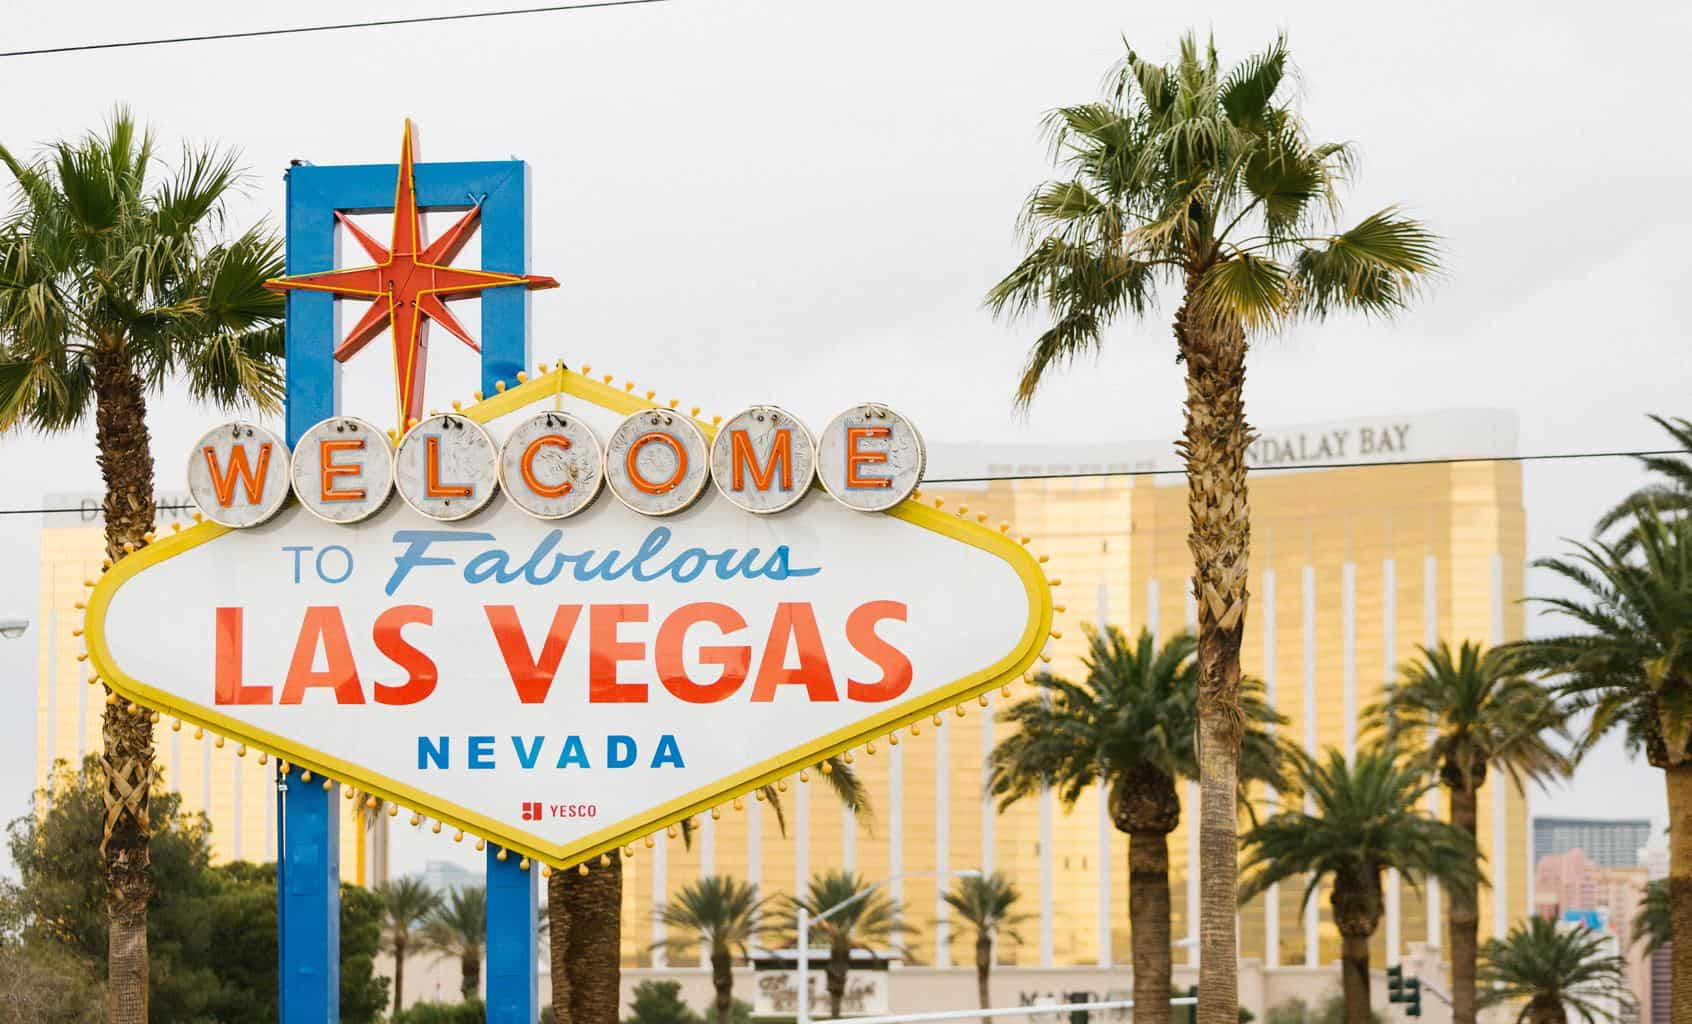 Las Vegas can be family friendly and budget friendly!